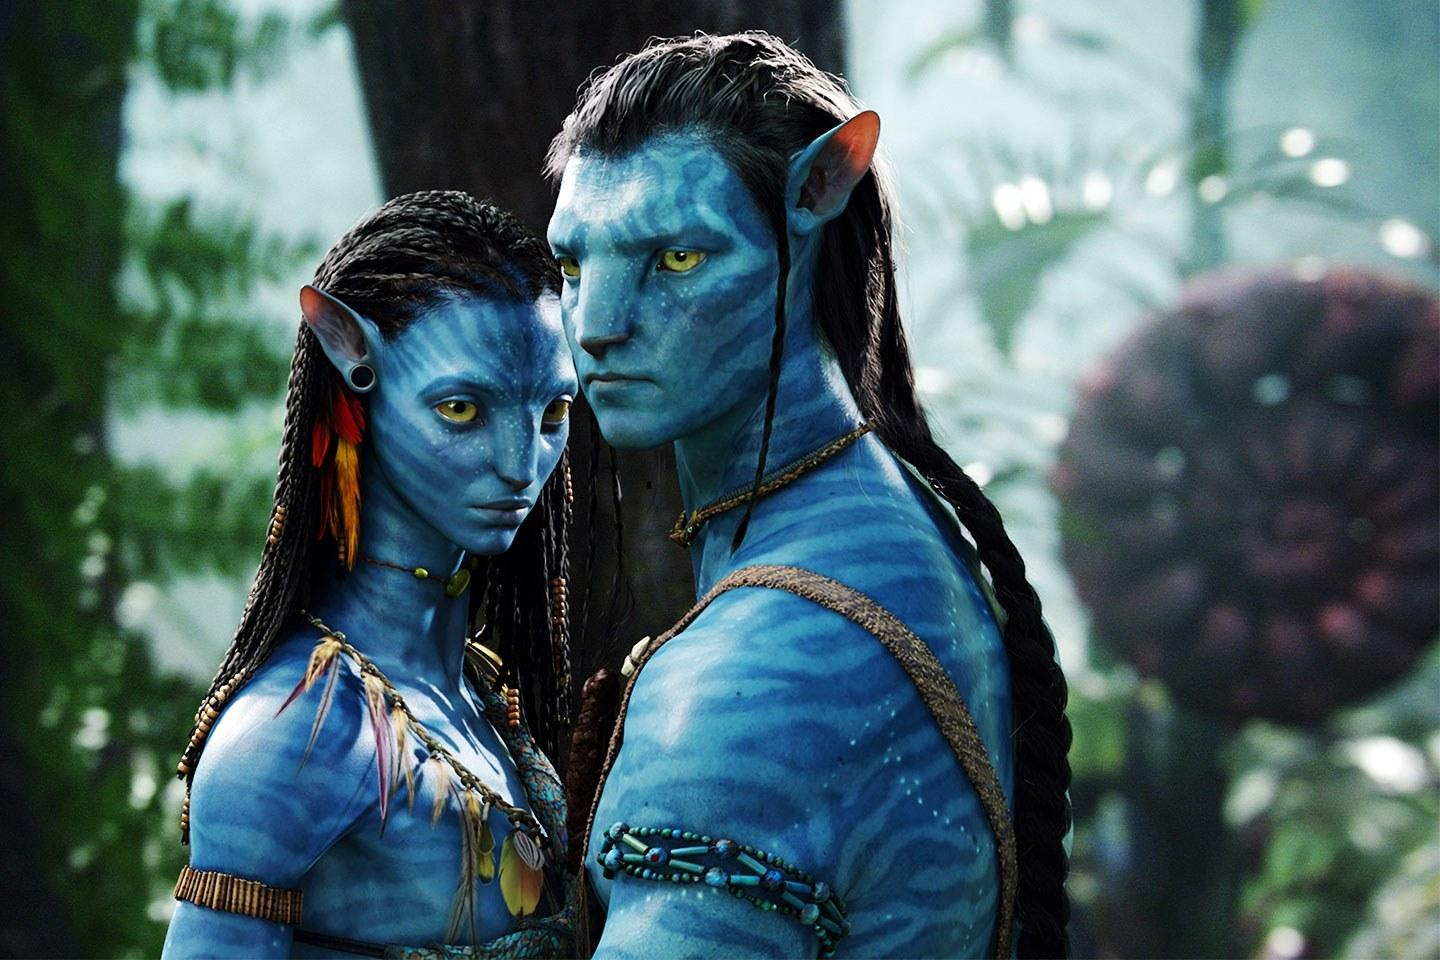 james cameron reveals why avatar 2, 3, 4 and 5 have taken so long